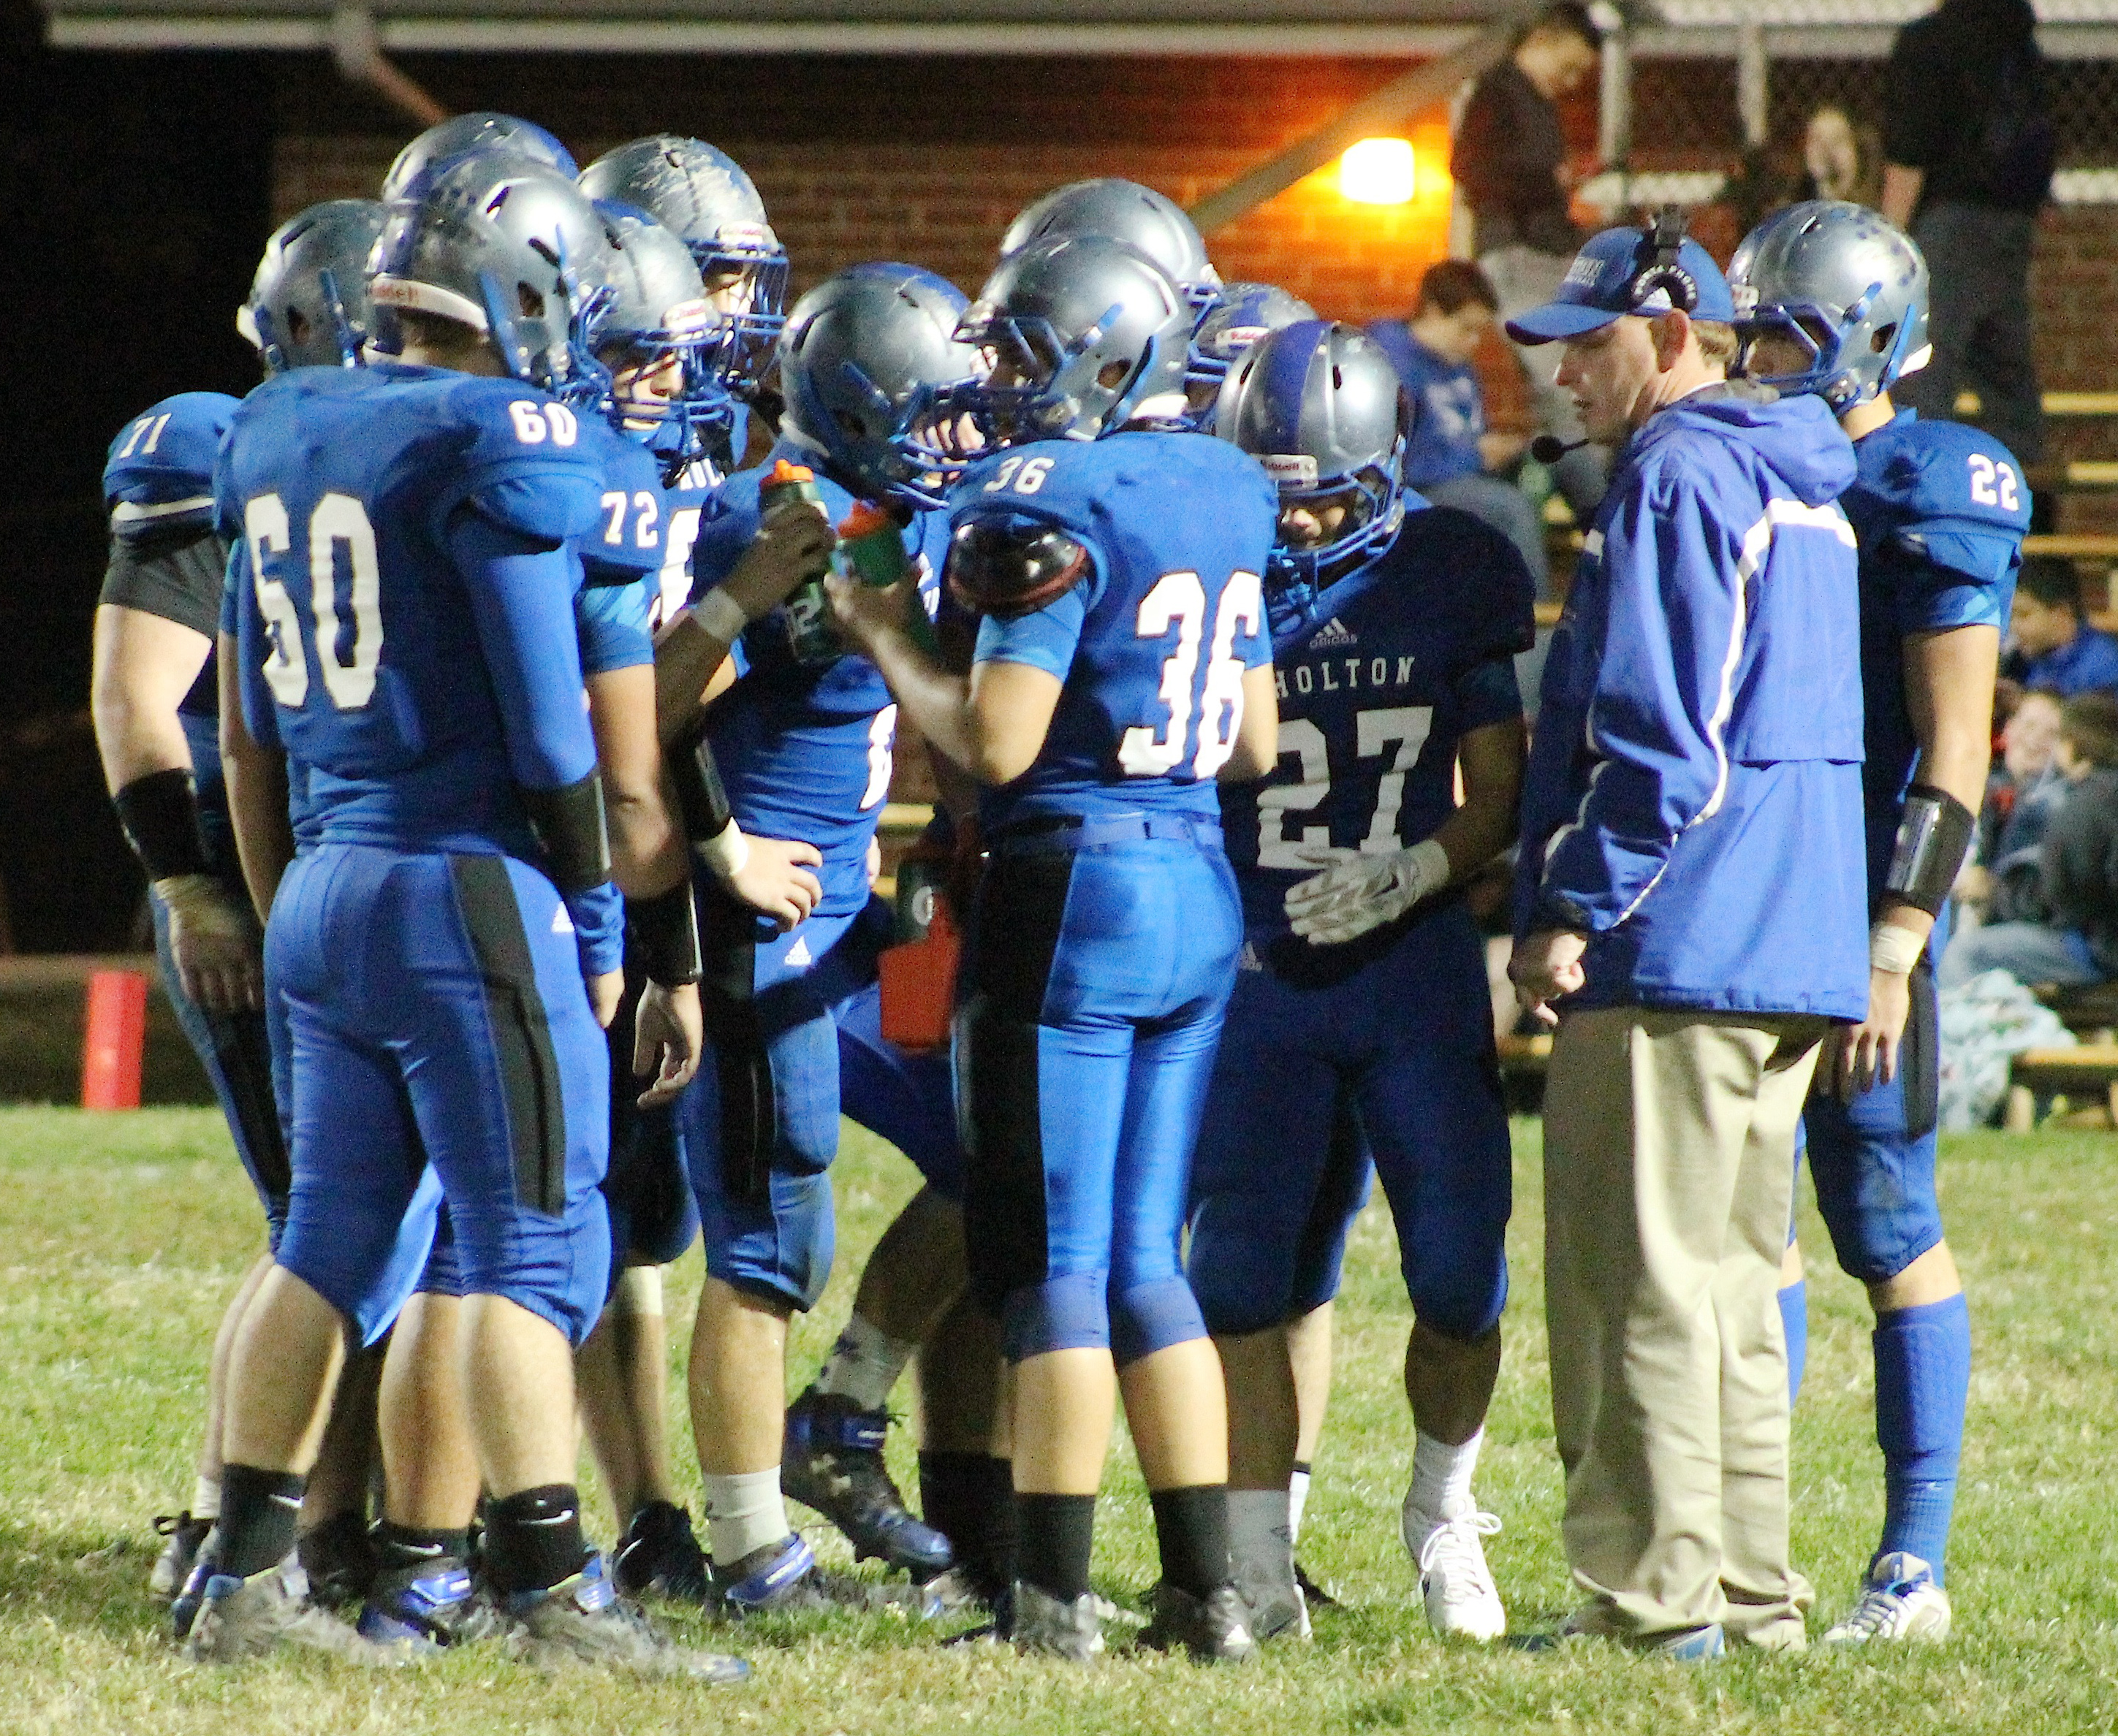 The Wildcats huddle up and listen to coach Brooks Barta (right) during a timeout late in Friday's district football game.